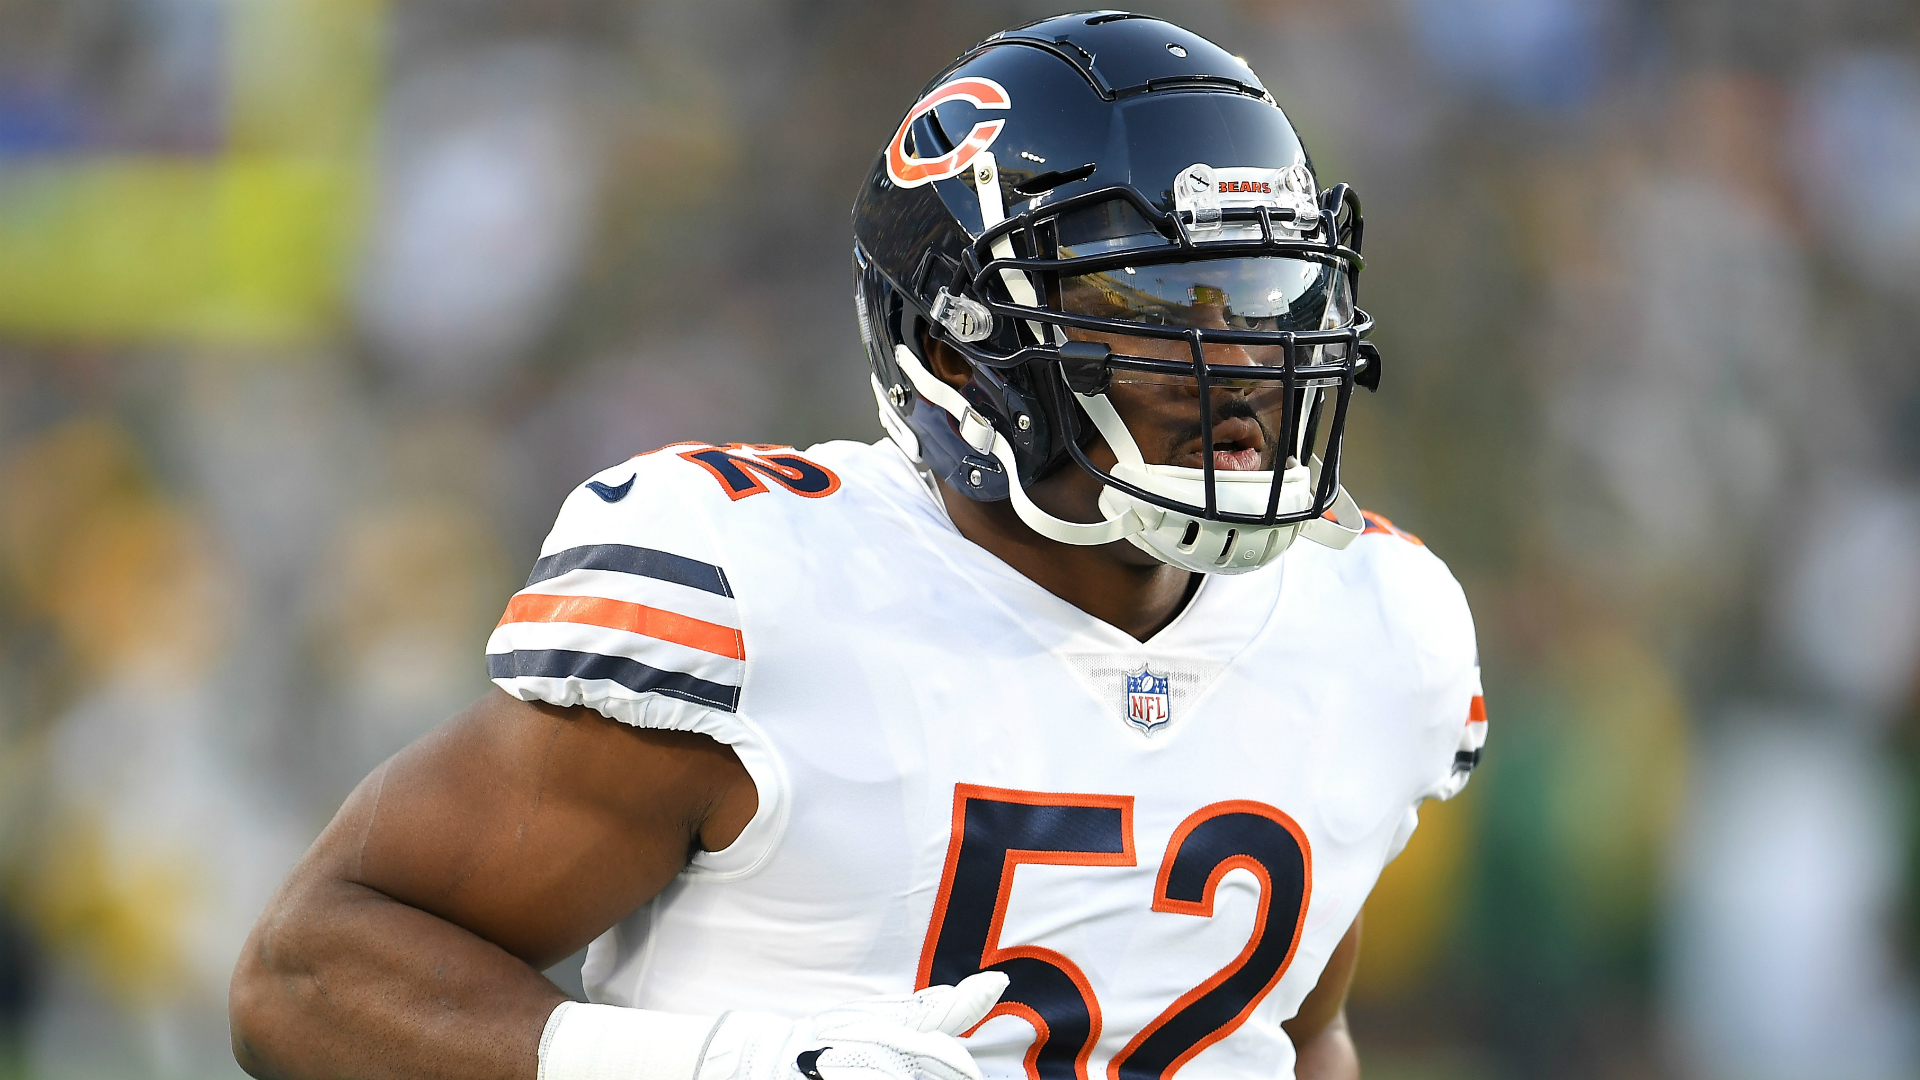 Mack 'day-to-day' with ankle injury